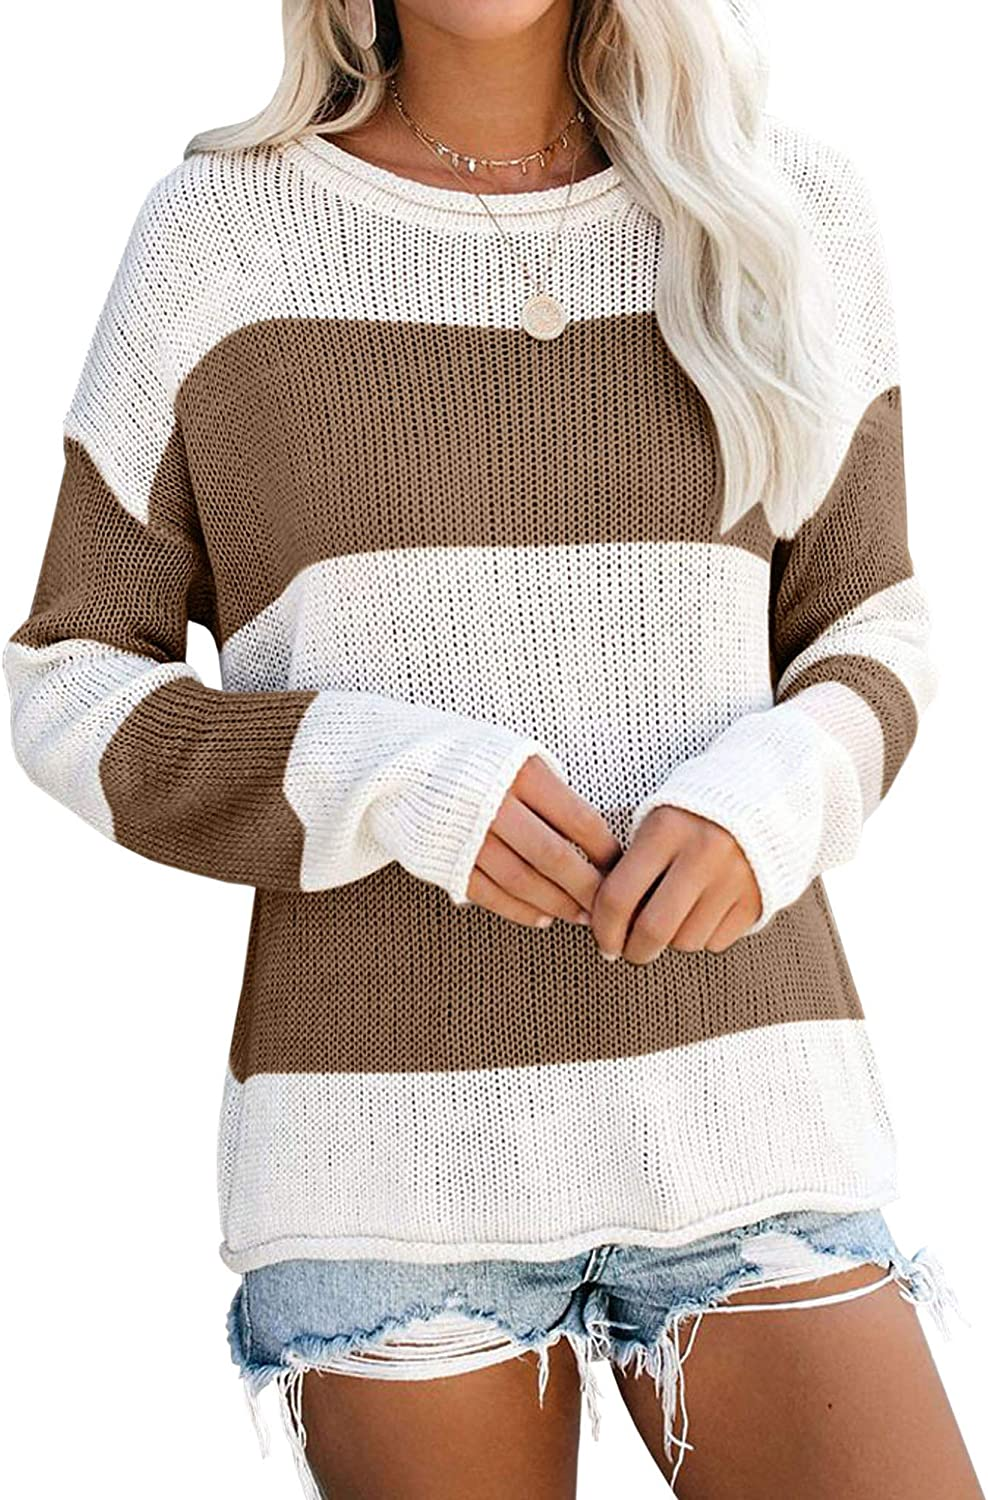 Hibluco Women's Round Neck Long Max 68% OFF Sleeve Knit Block Award Color Striped